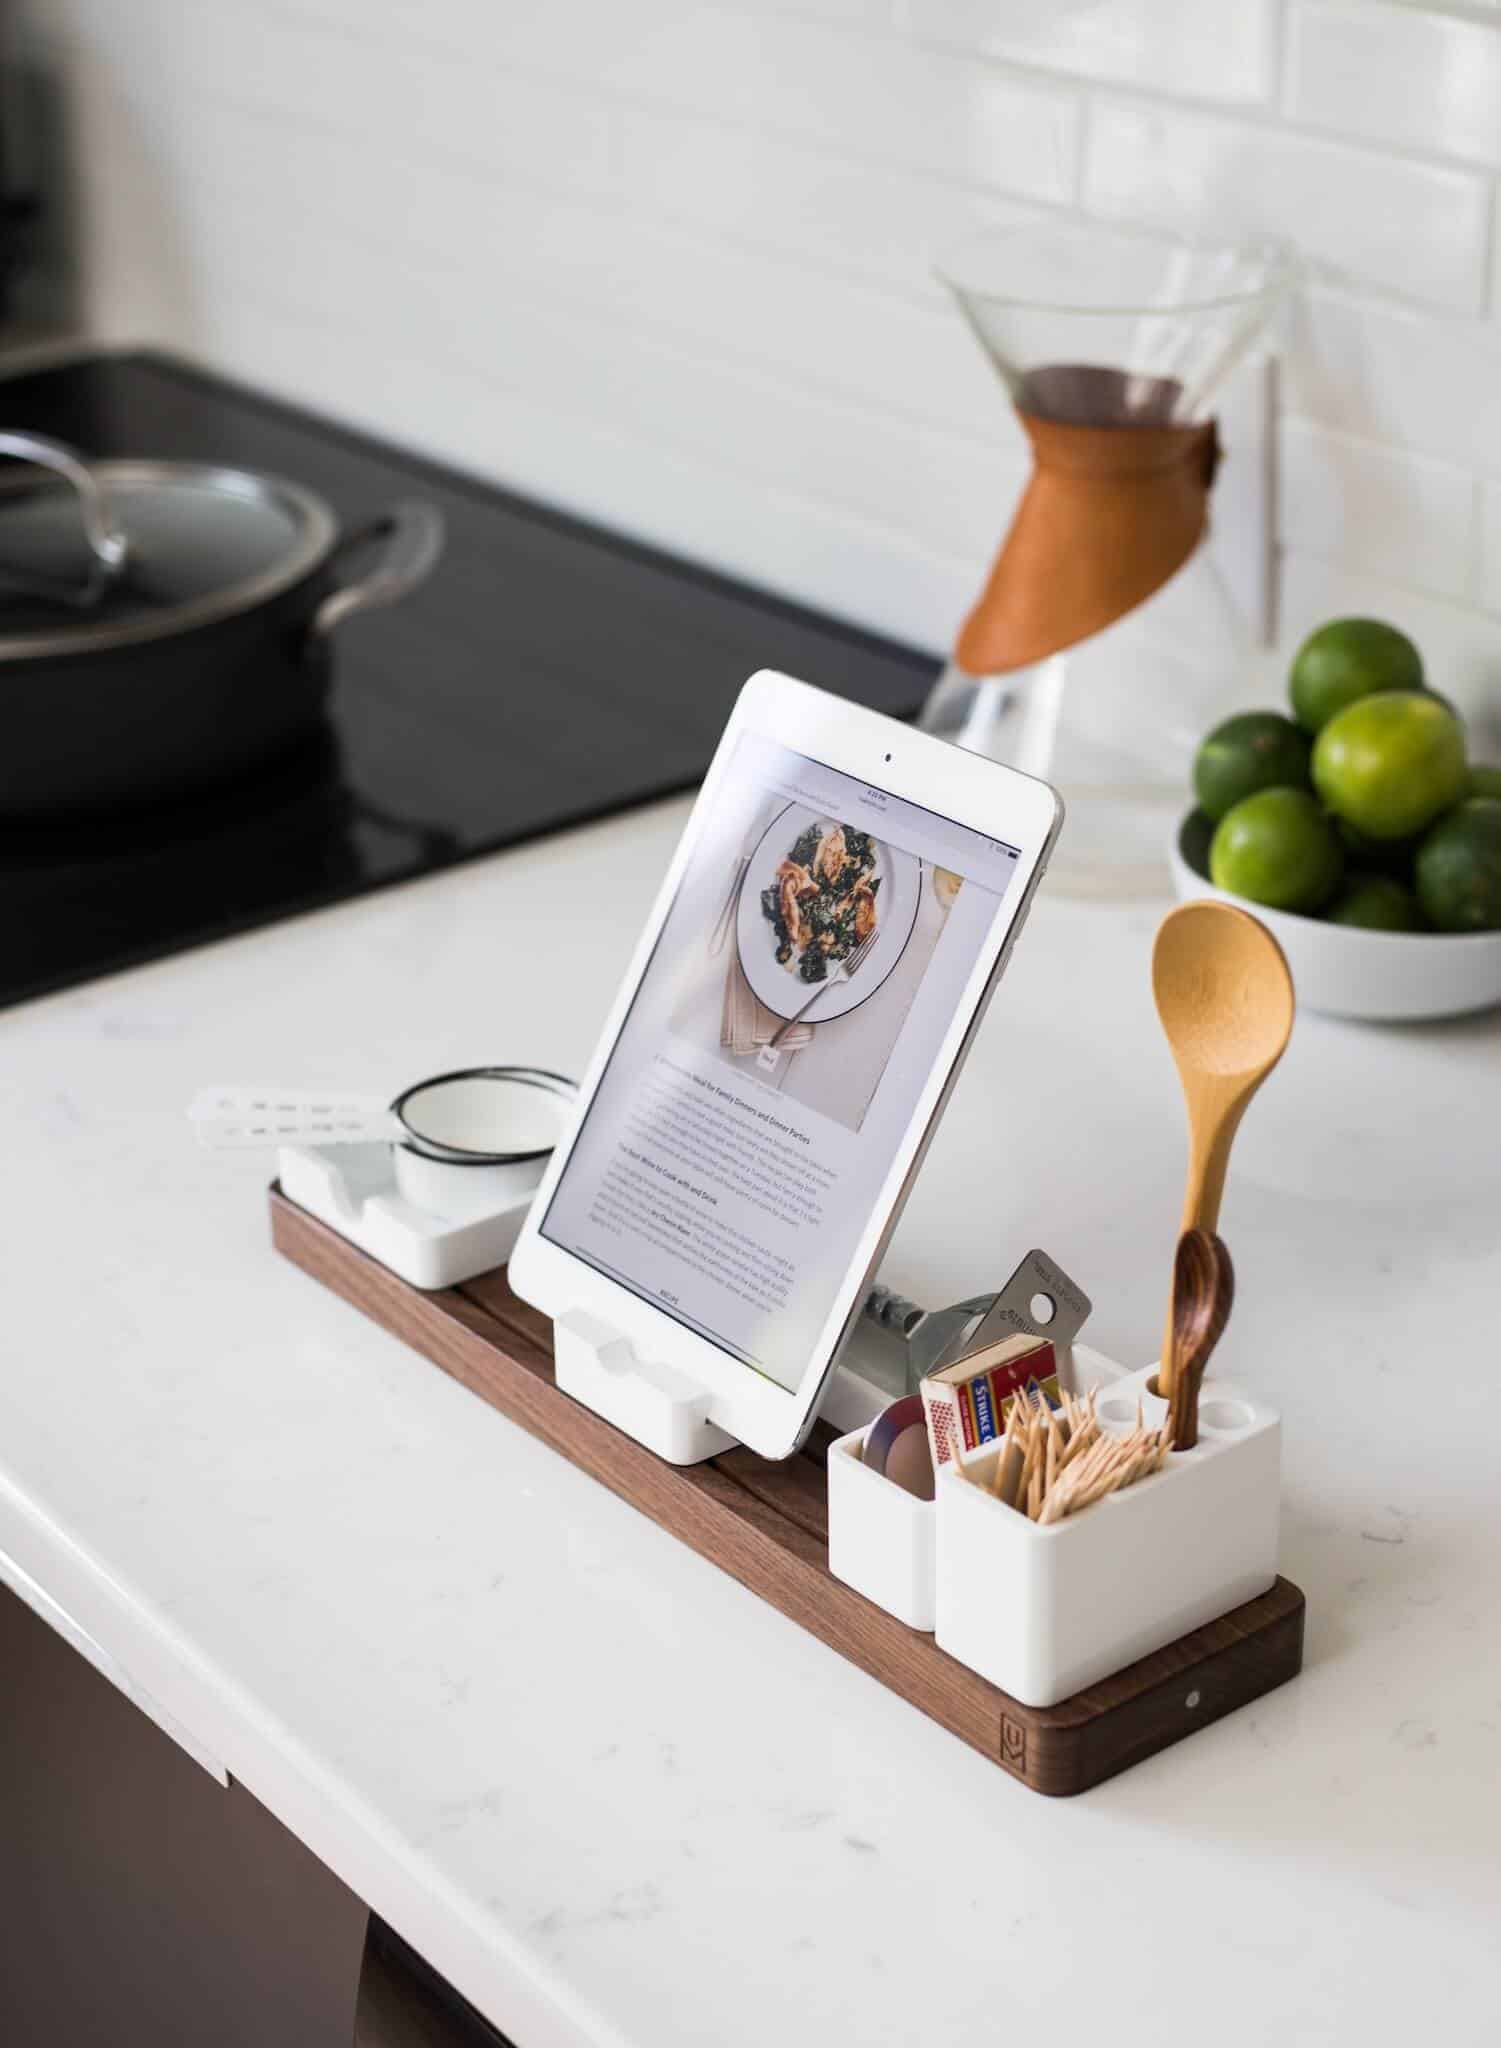 Ipad-recipe-Stand | Friendly Kitchen Upgrades